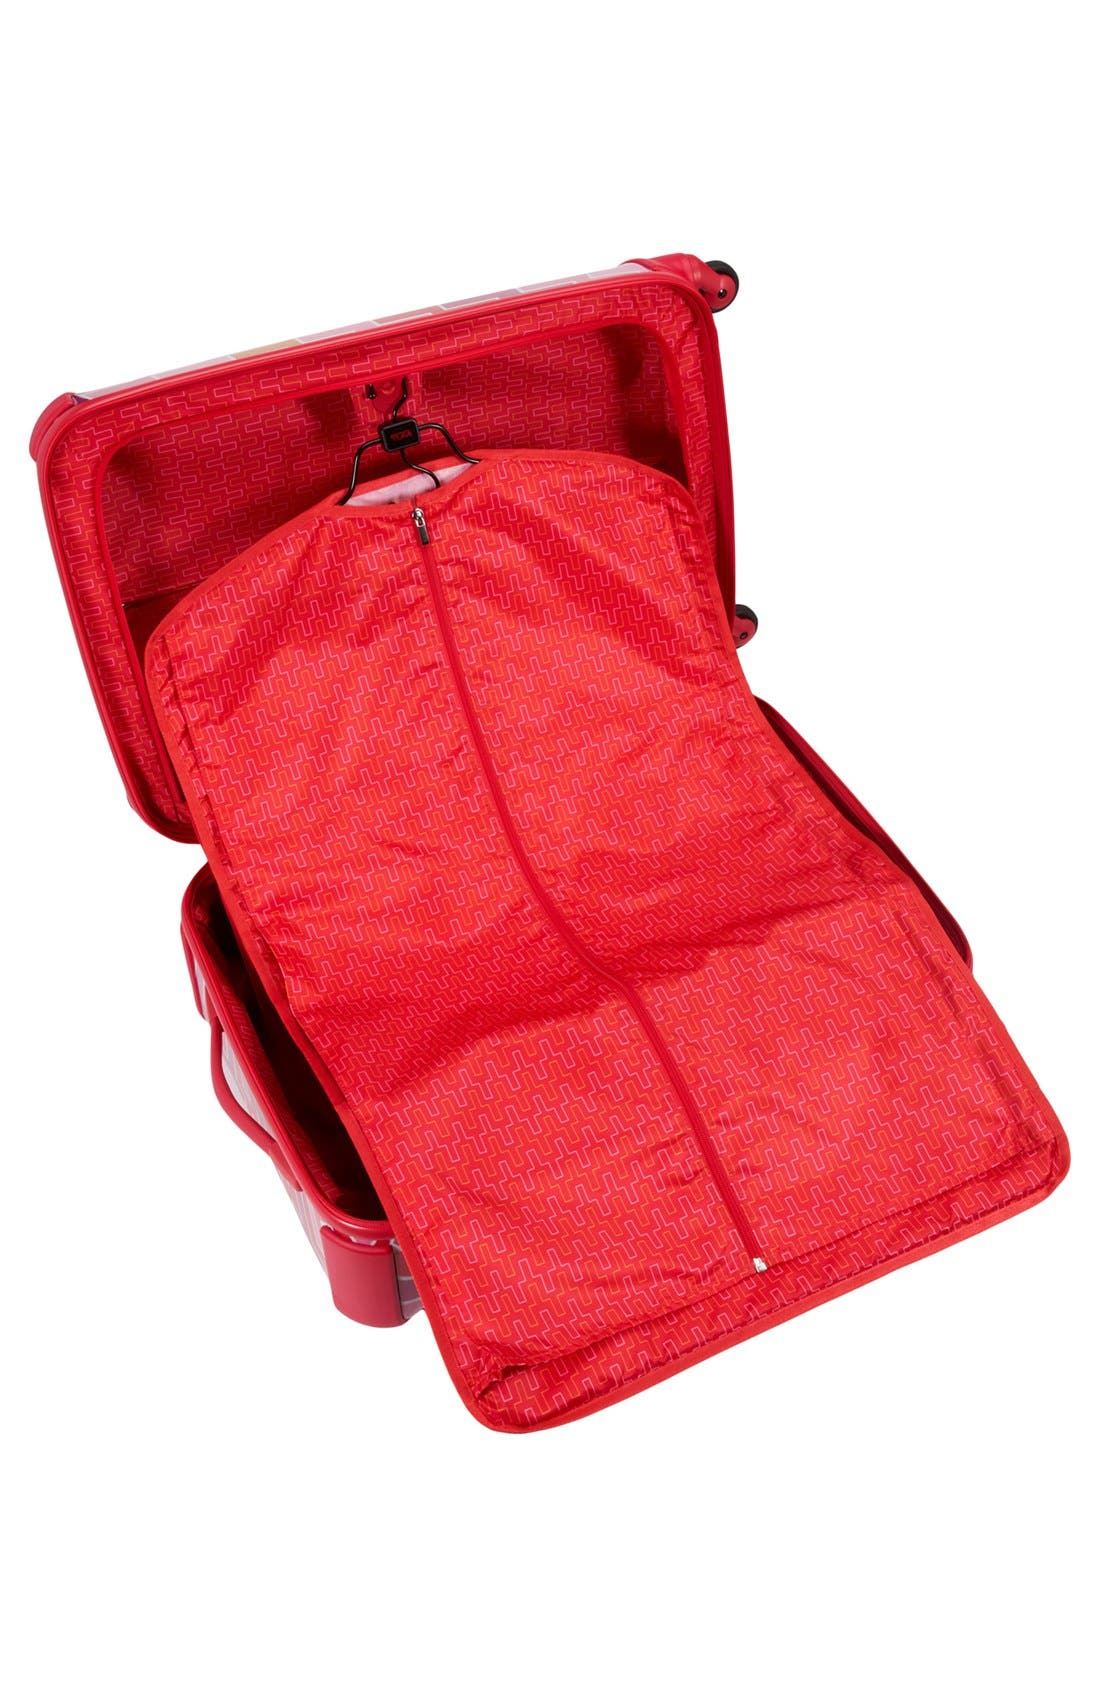 Alternate Image 4  - Tumi 'Vapor™ - Jonathan Adler' Medium Trip Packing Case